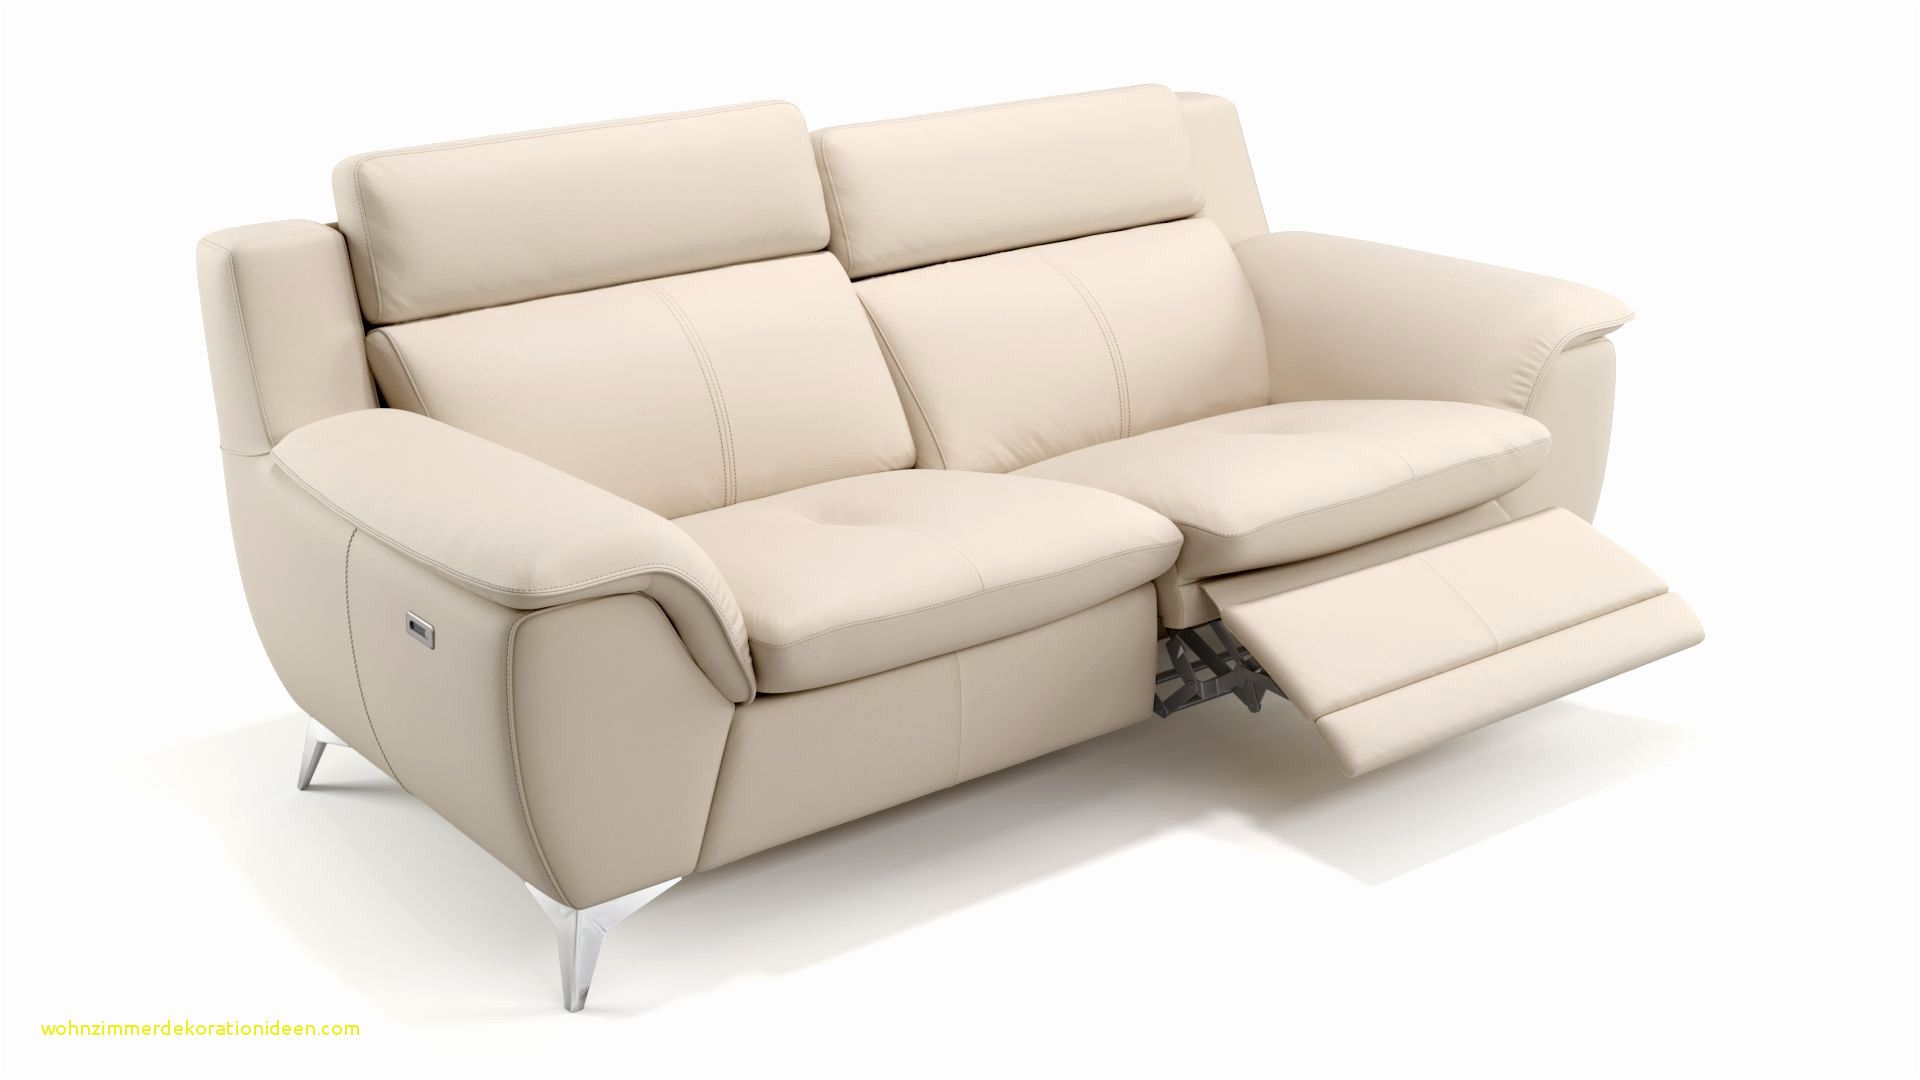 Terrific Hulsta Sofa Garnitur Big Sofas Sofa Home